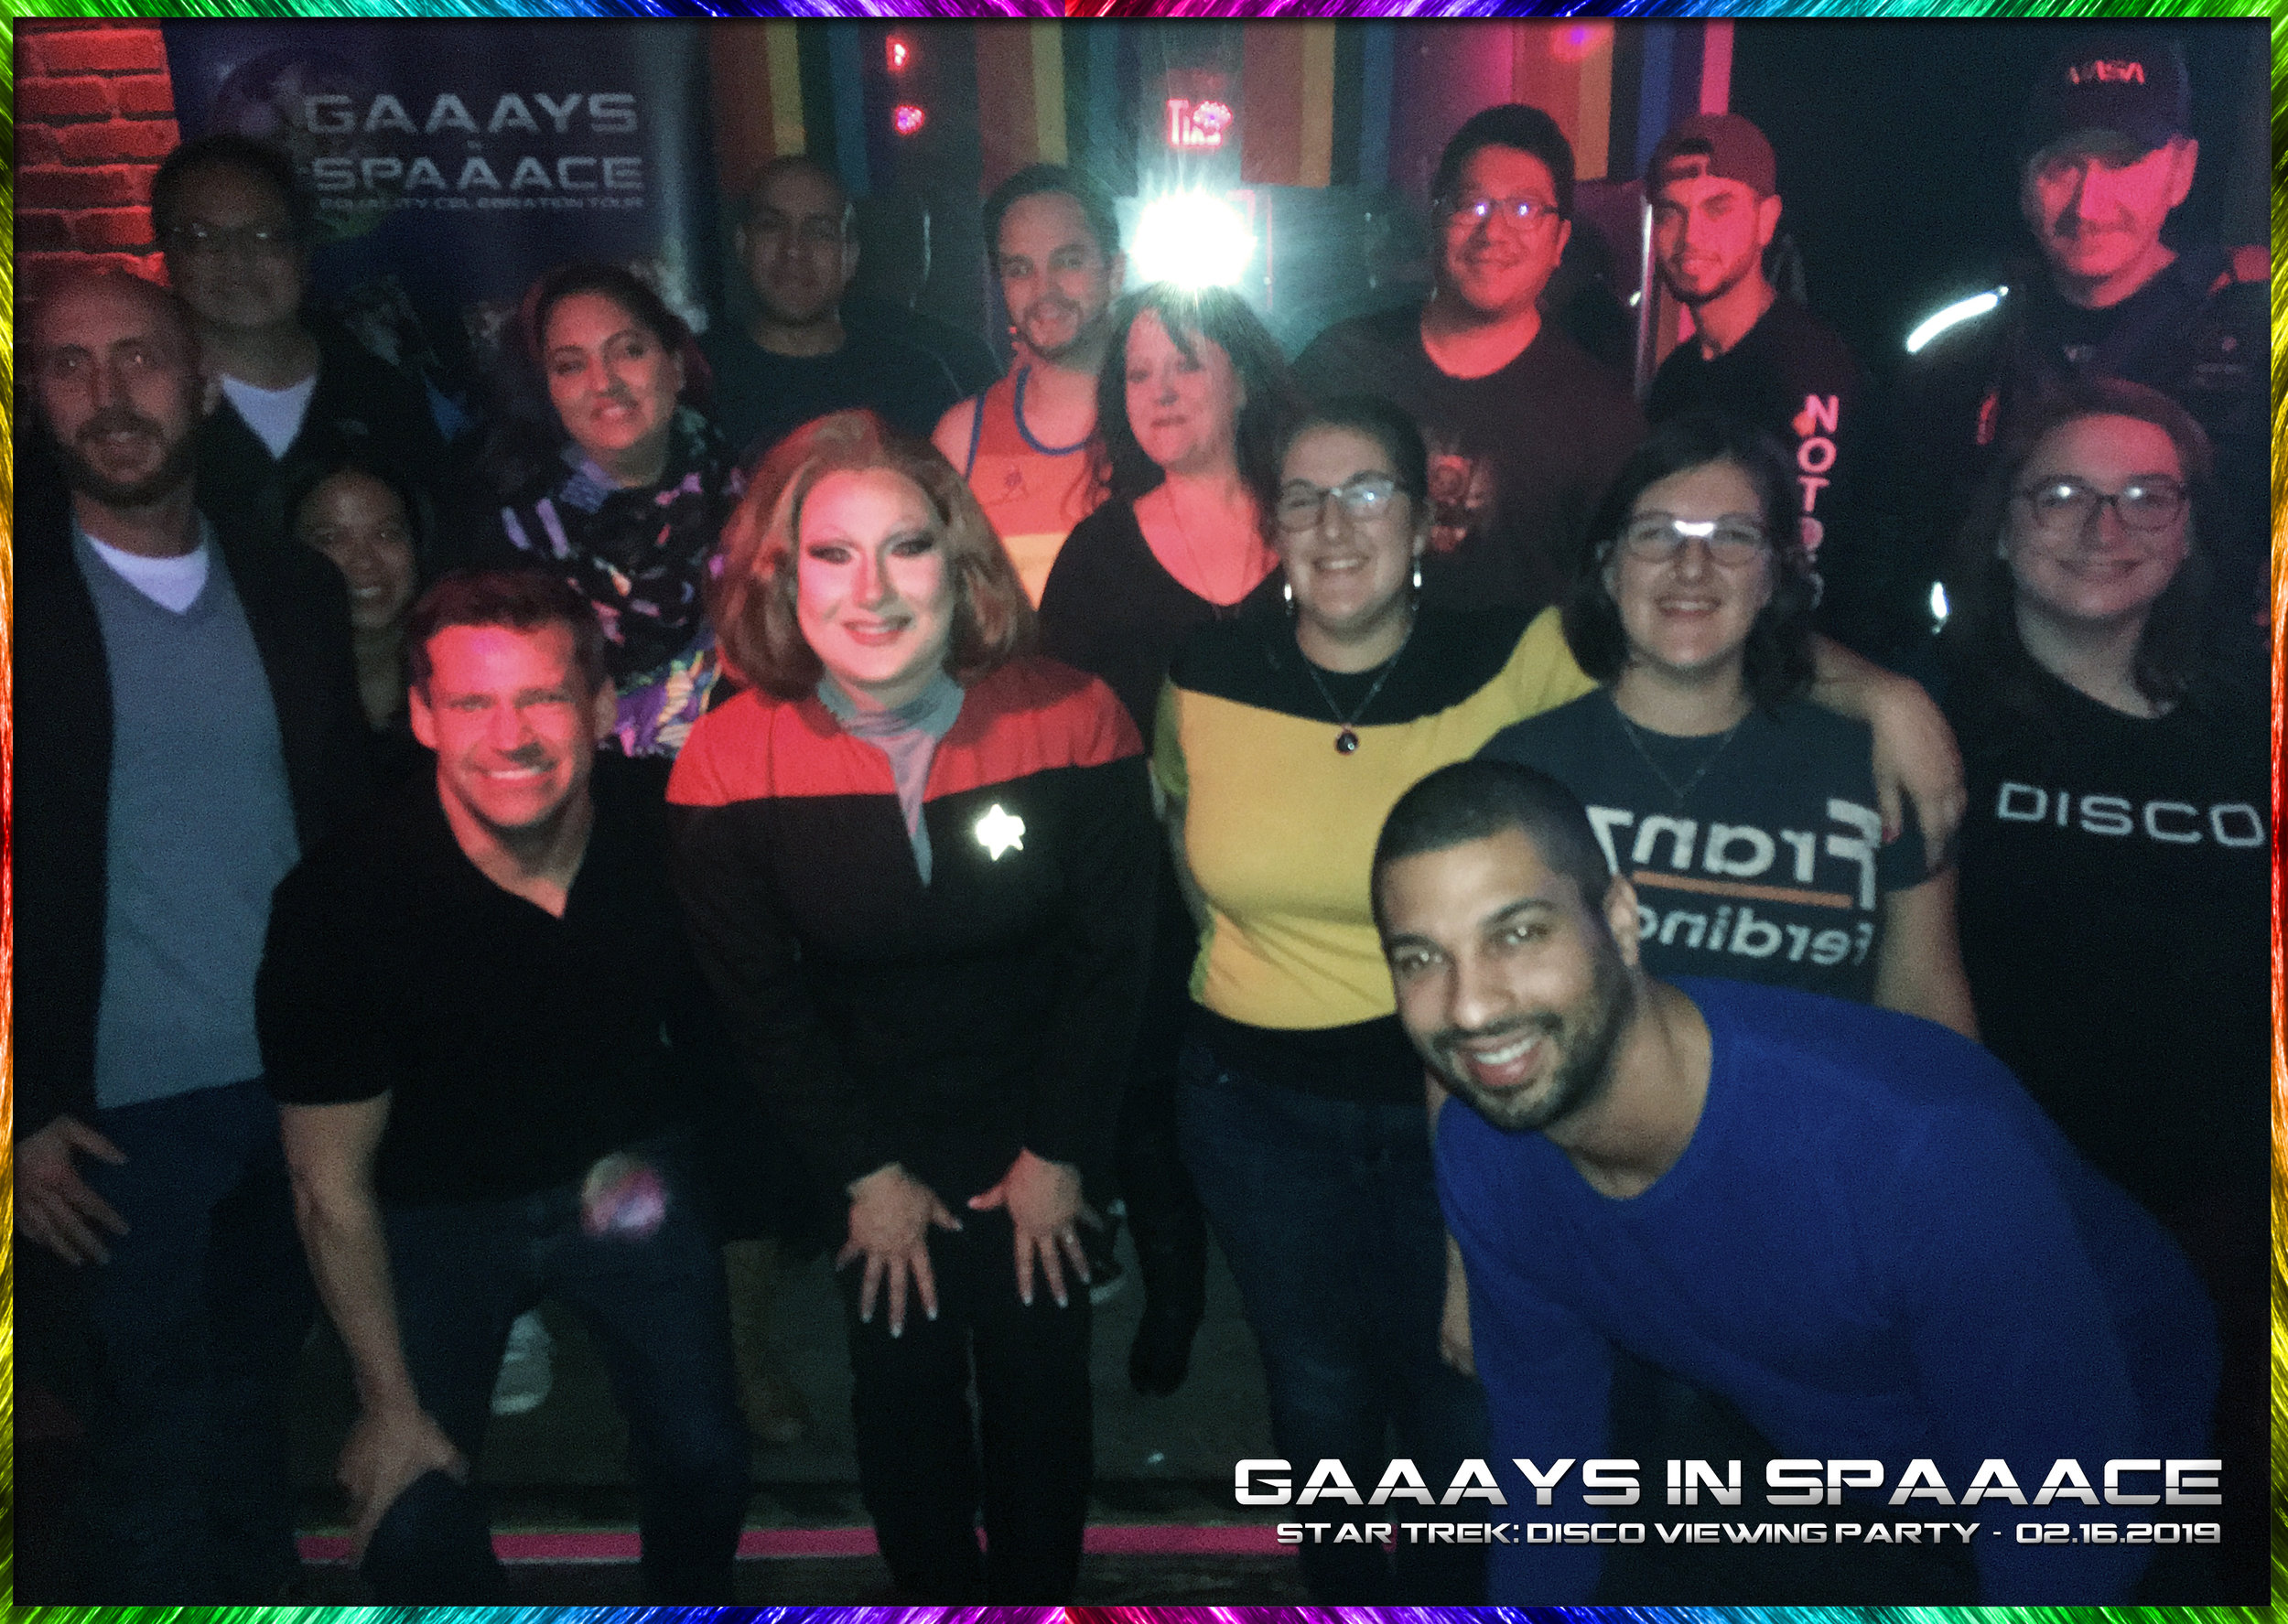 3-02-16-19-GIS-DISCO-VIEWING-PARTY-GROUP-3.jpg